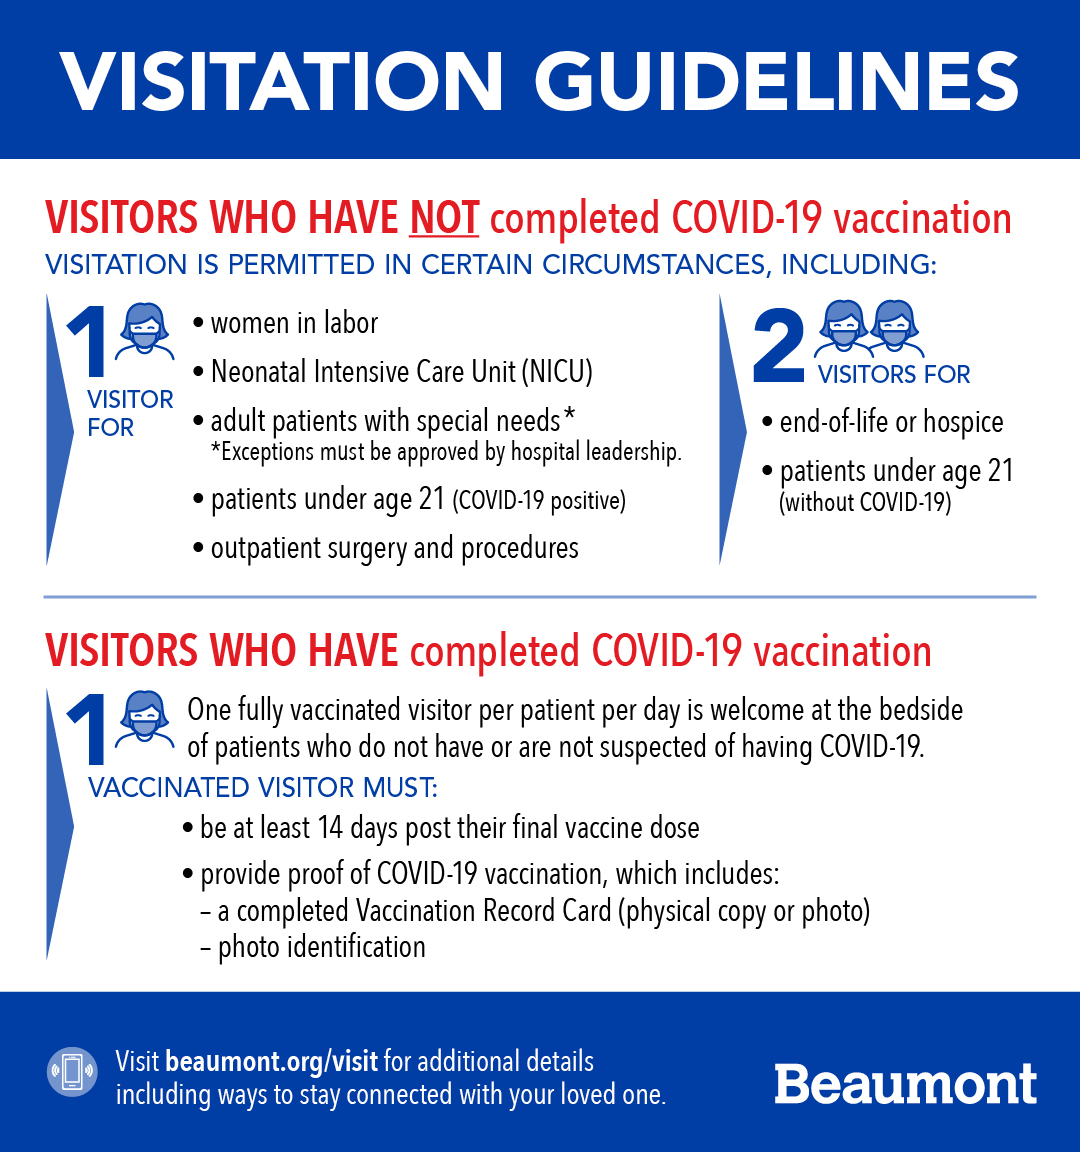 Infographic: Beaumont's current visitation guidelines